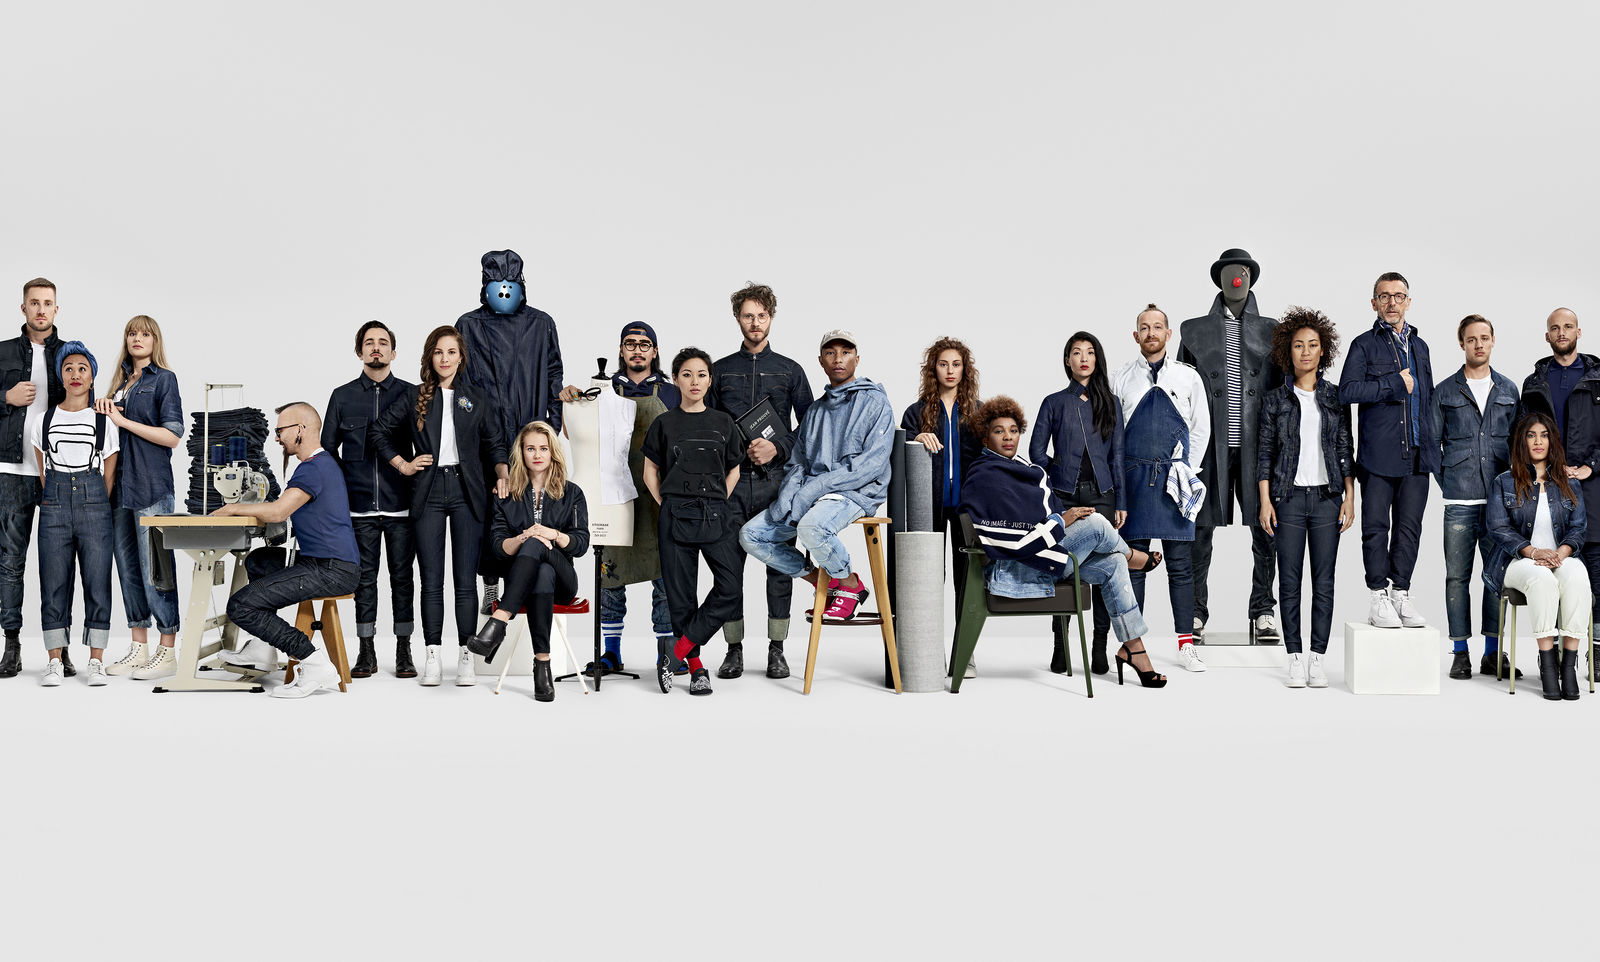 G-STAR RAW FOOTWEAR (Bild 2)